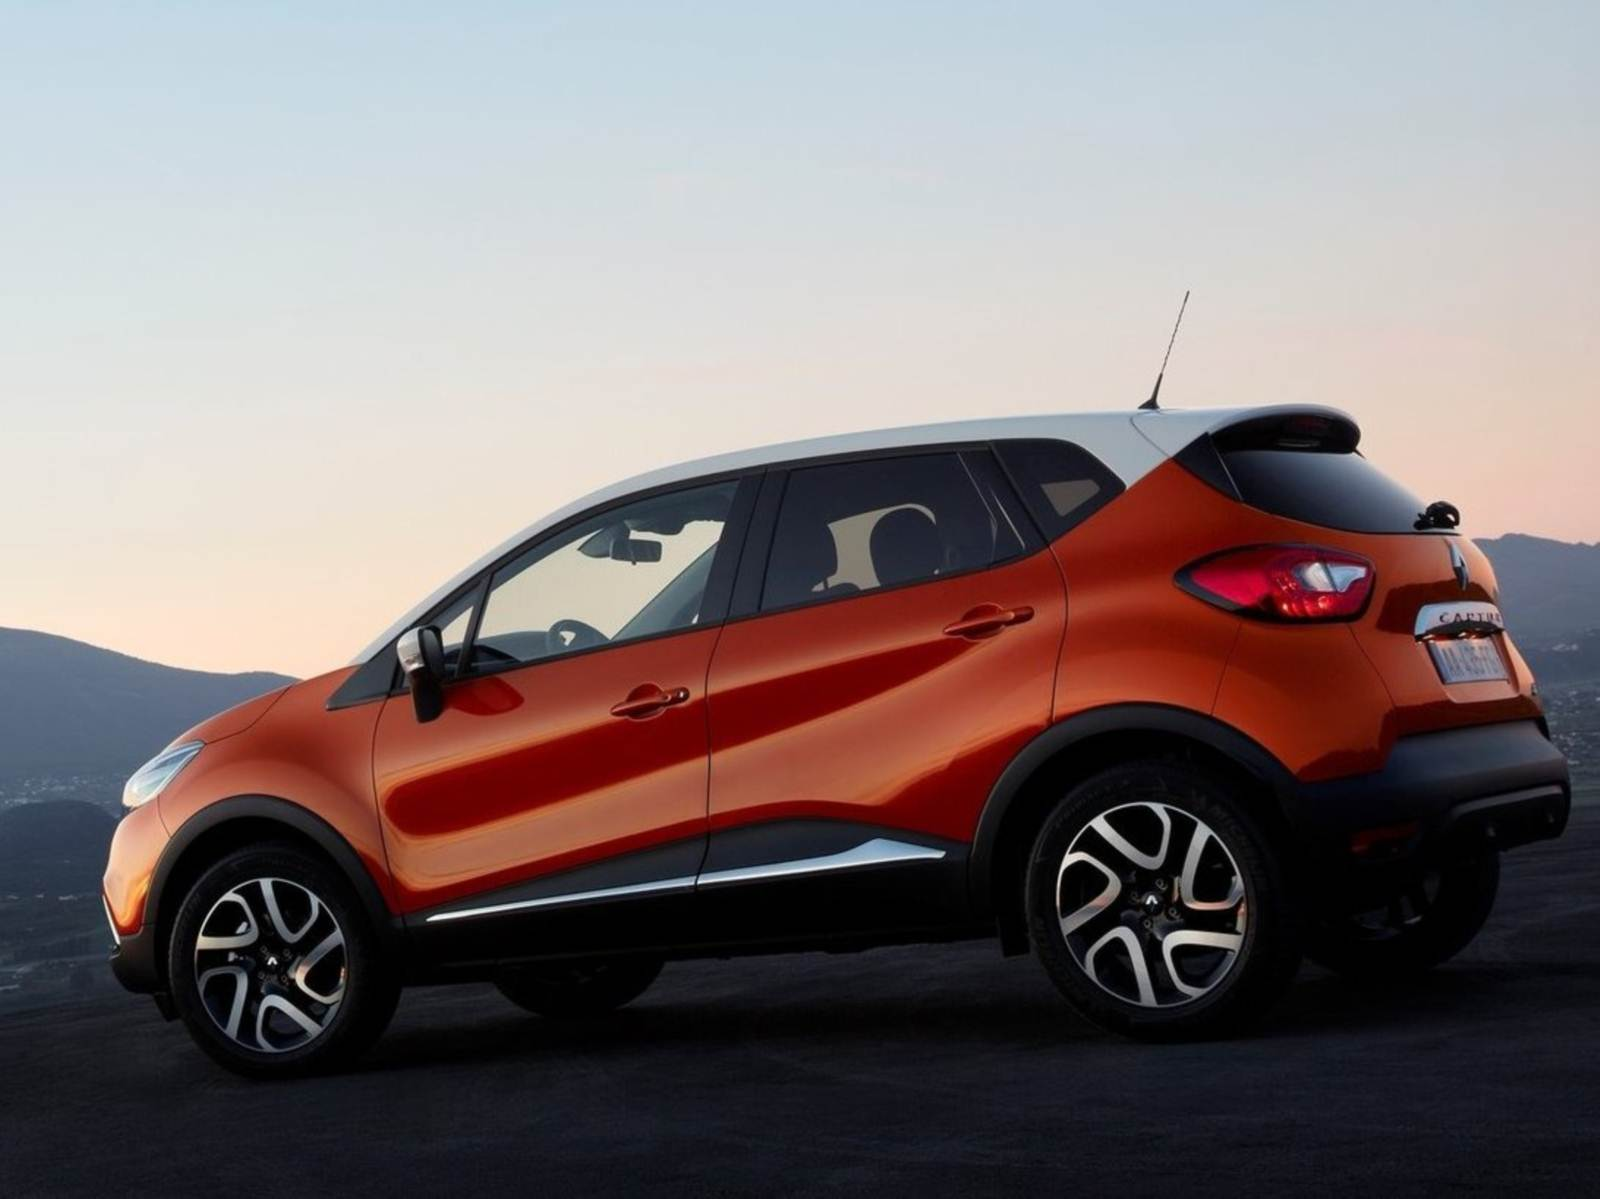 renault captur chega em 2016 para enfrentar o hr v car blog br. Black Bedroom Furniture Sets. Home Design Ideas